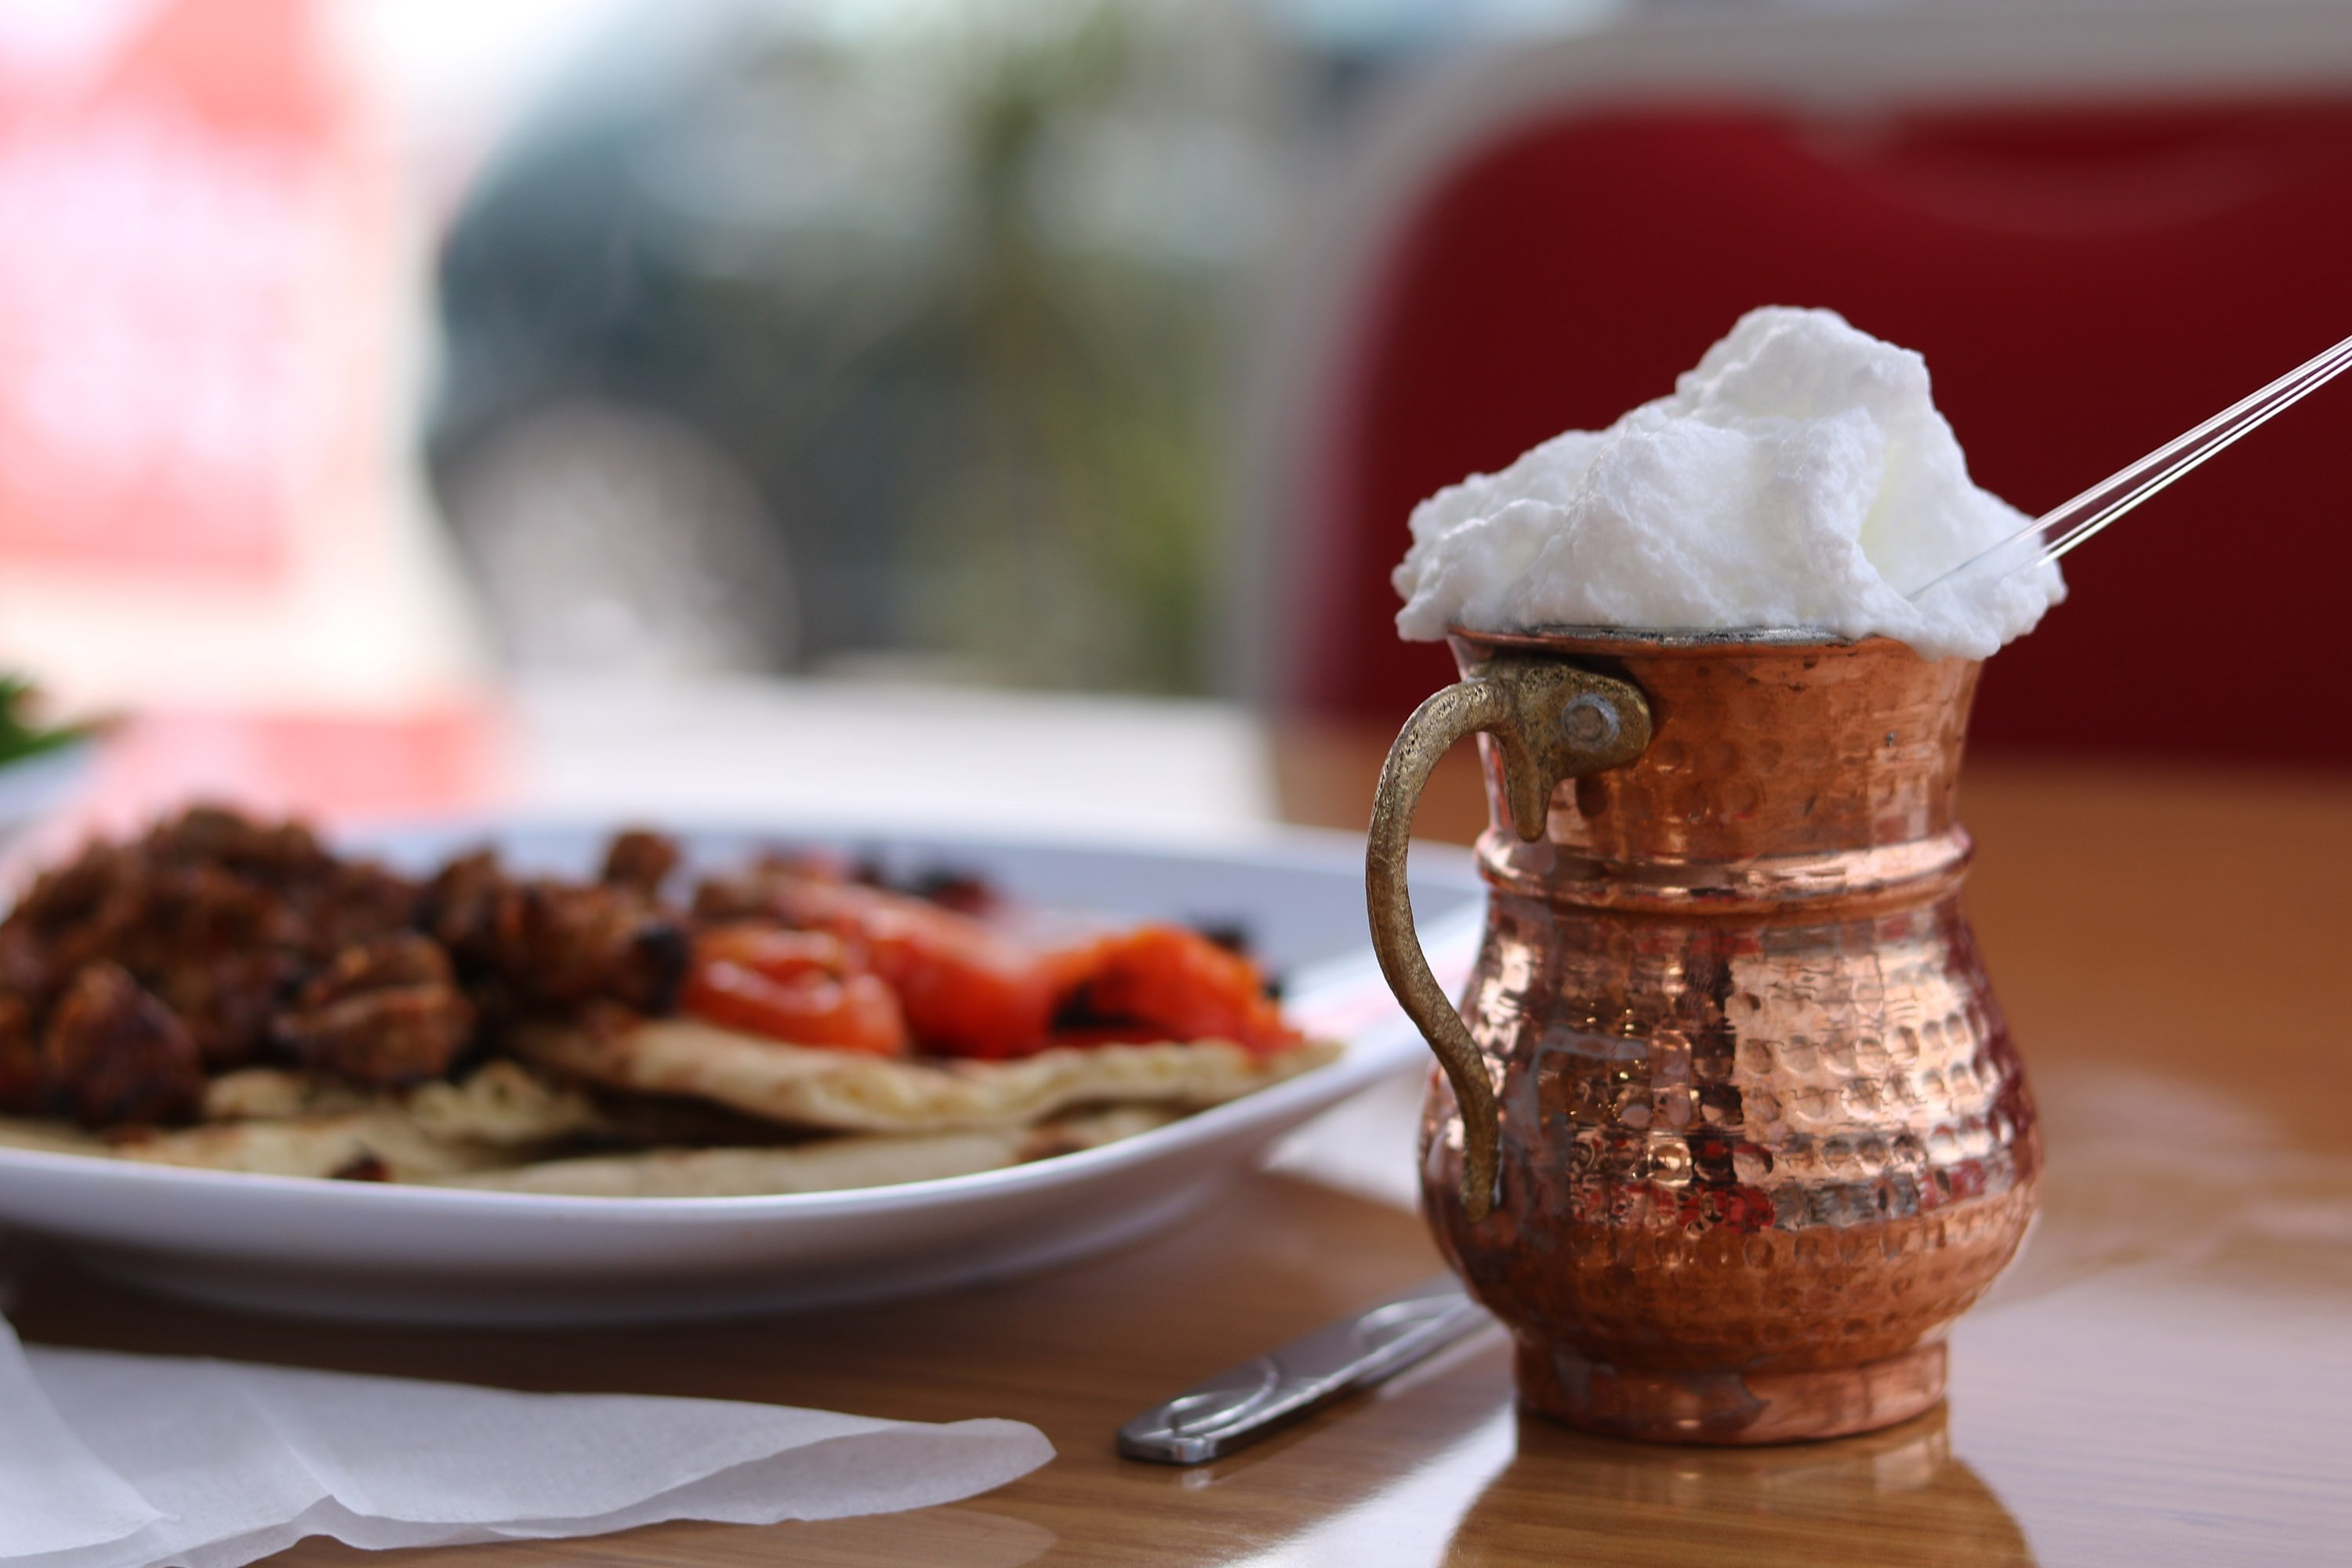 Yayık ayranı (pictured) is frothy and often served with traditional dishes like iskender kebab. (Shutterstock Photo)